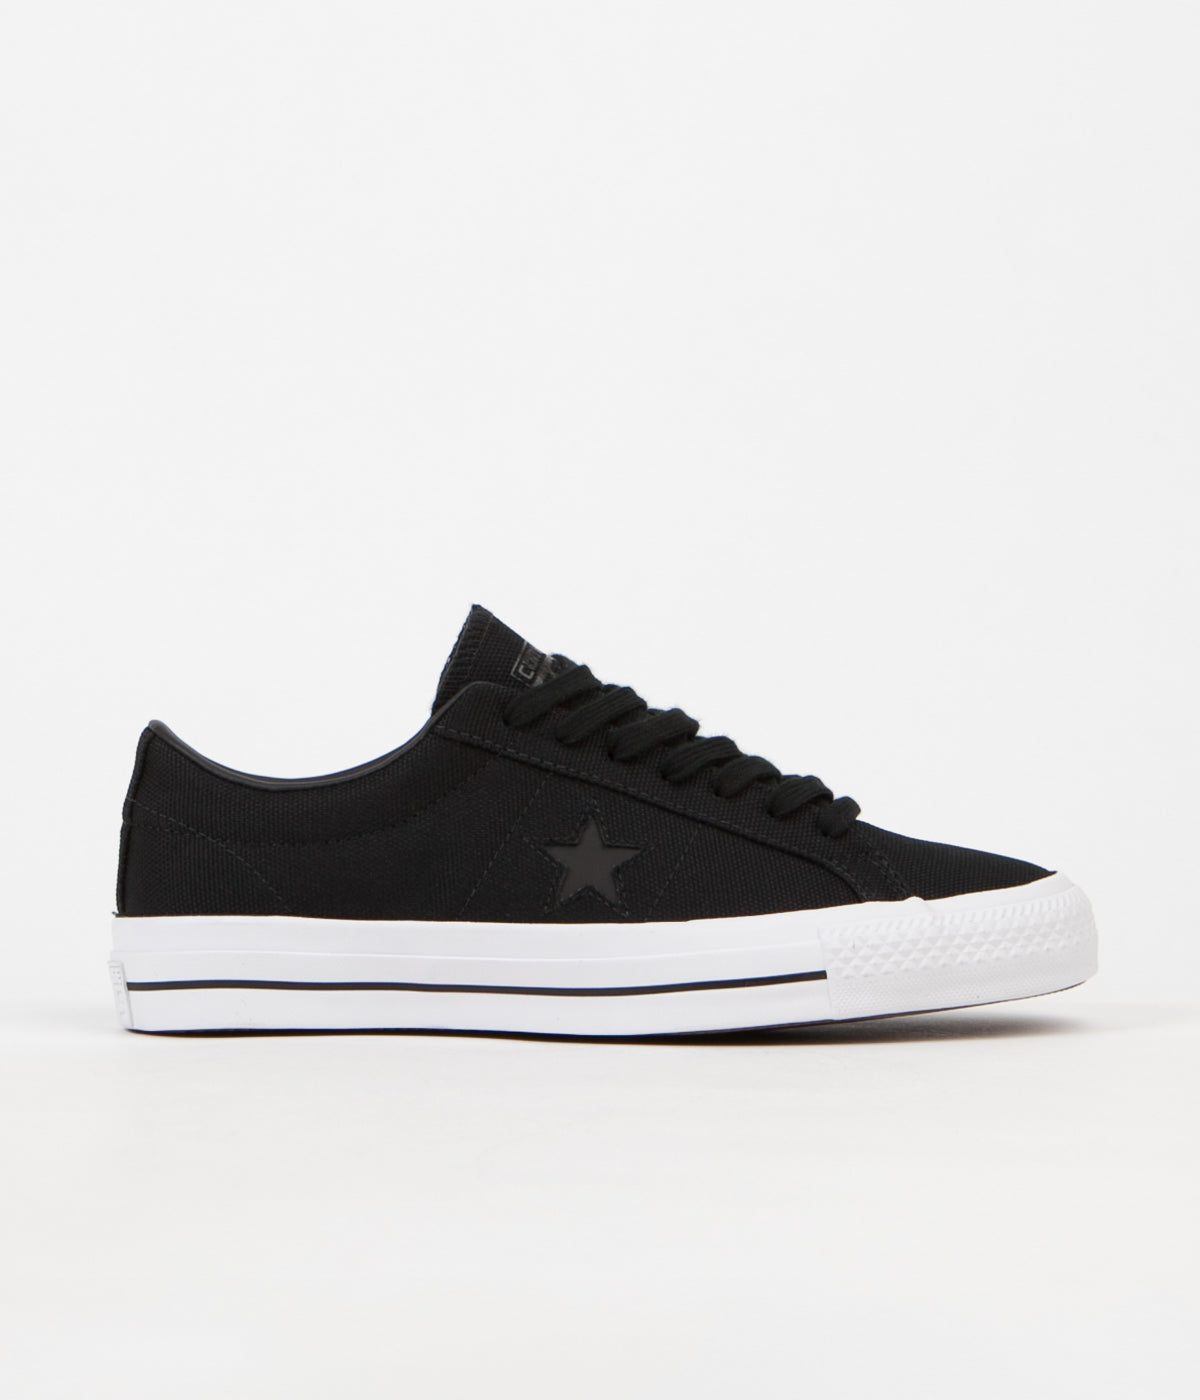 Converse x Mike Anderson One Star Pro Ox Shoes - Black / Black / White